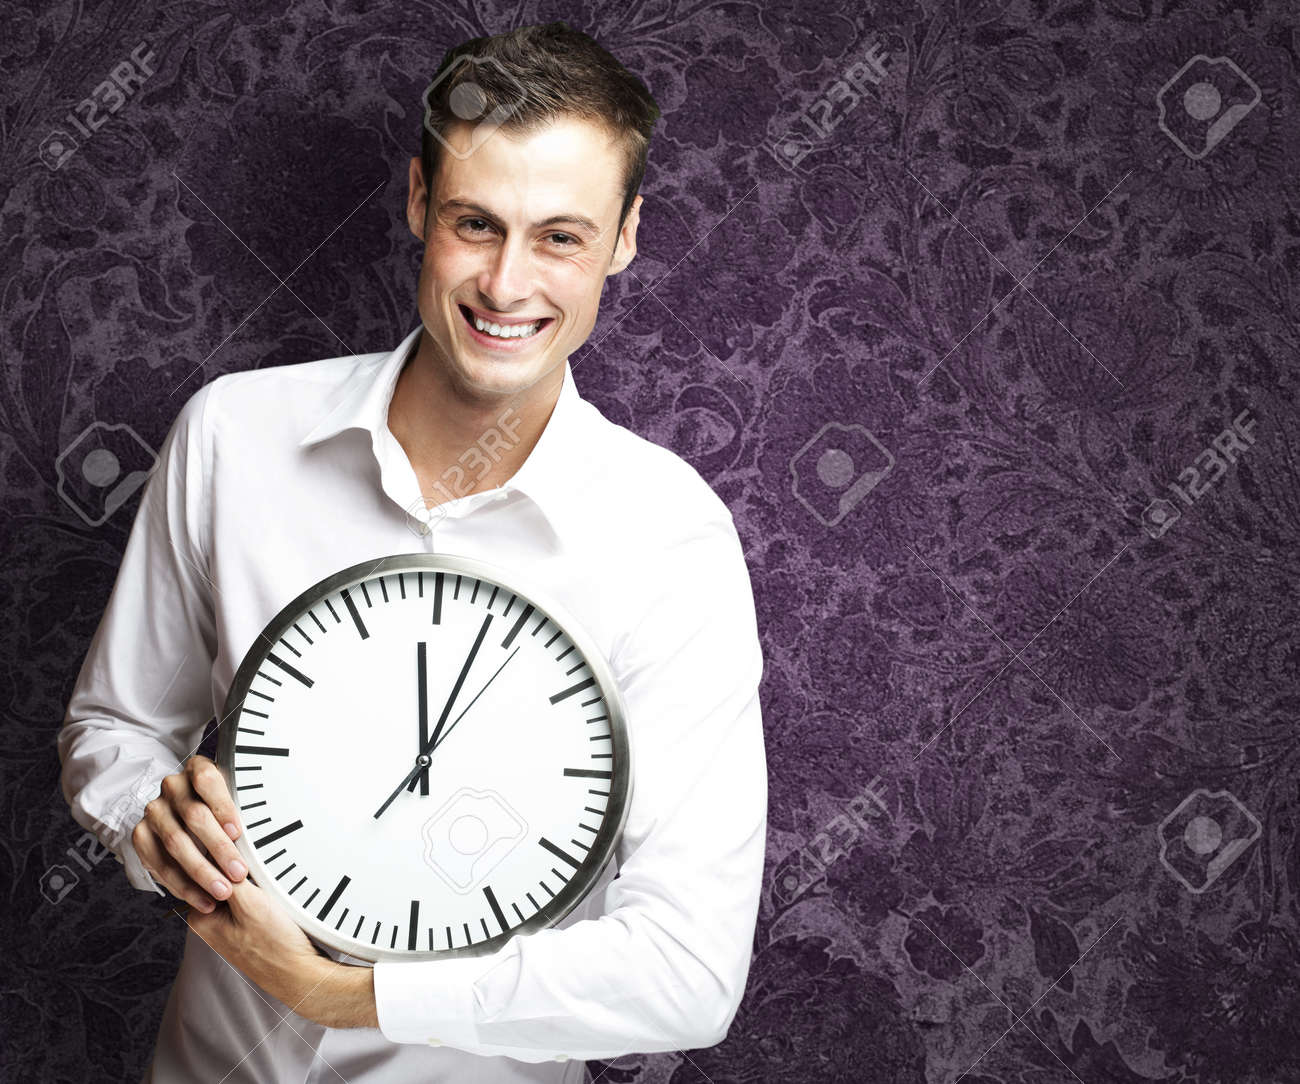 portrait of young man holding clock against a vintage background Stock Photo - 13156602